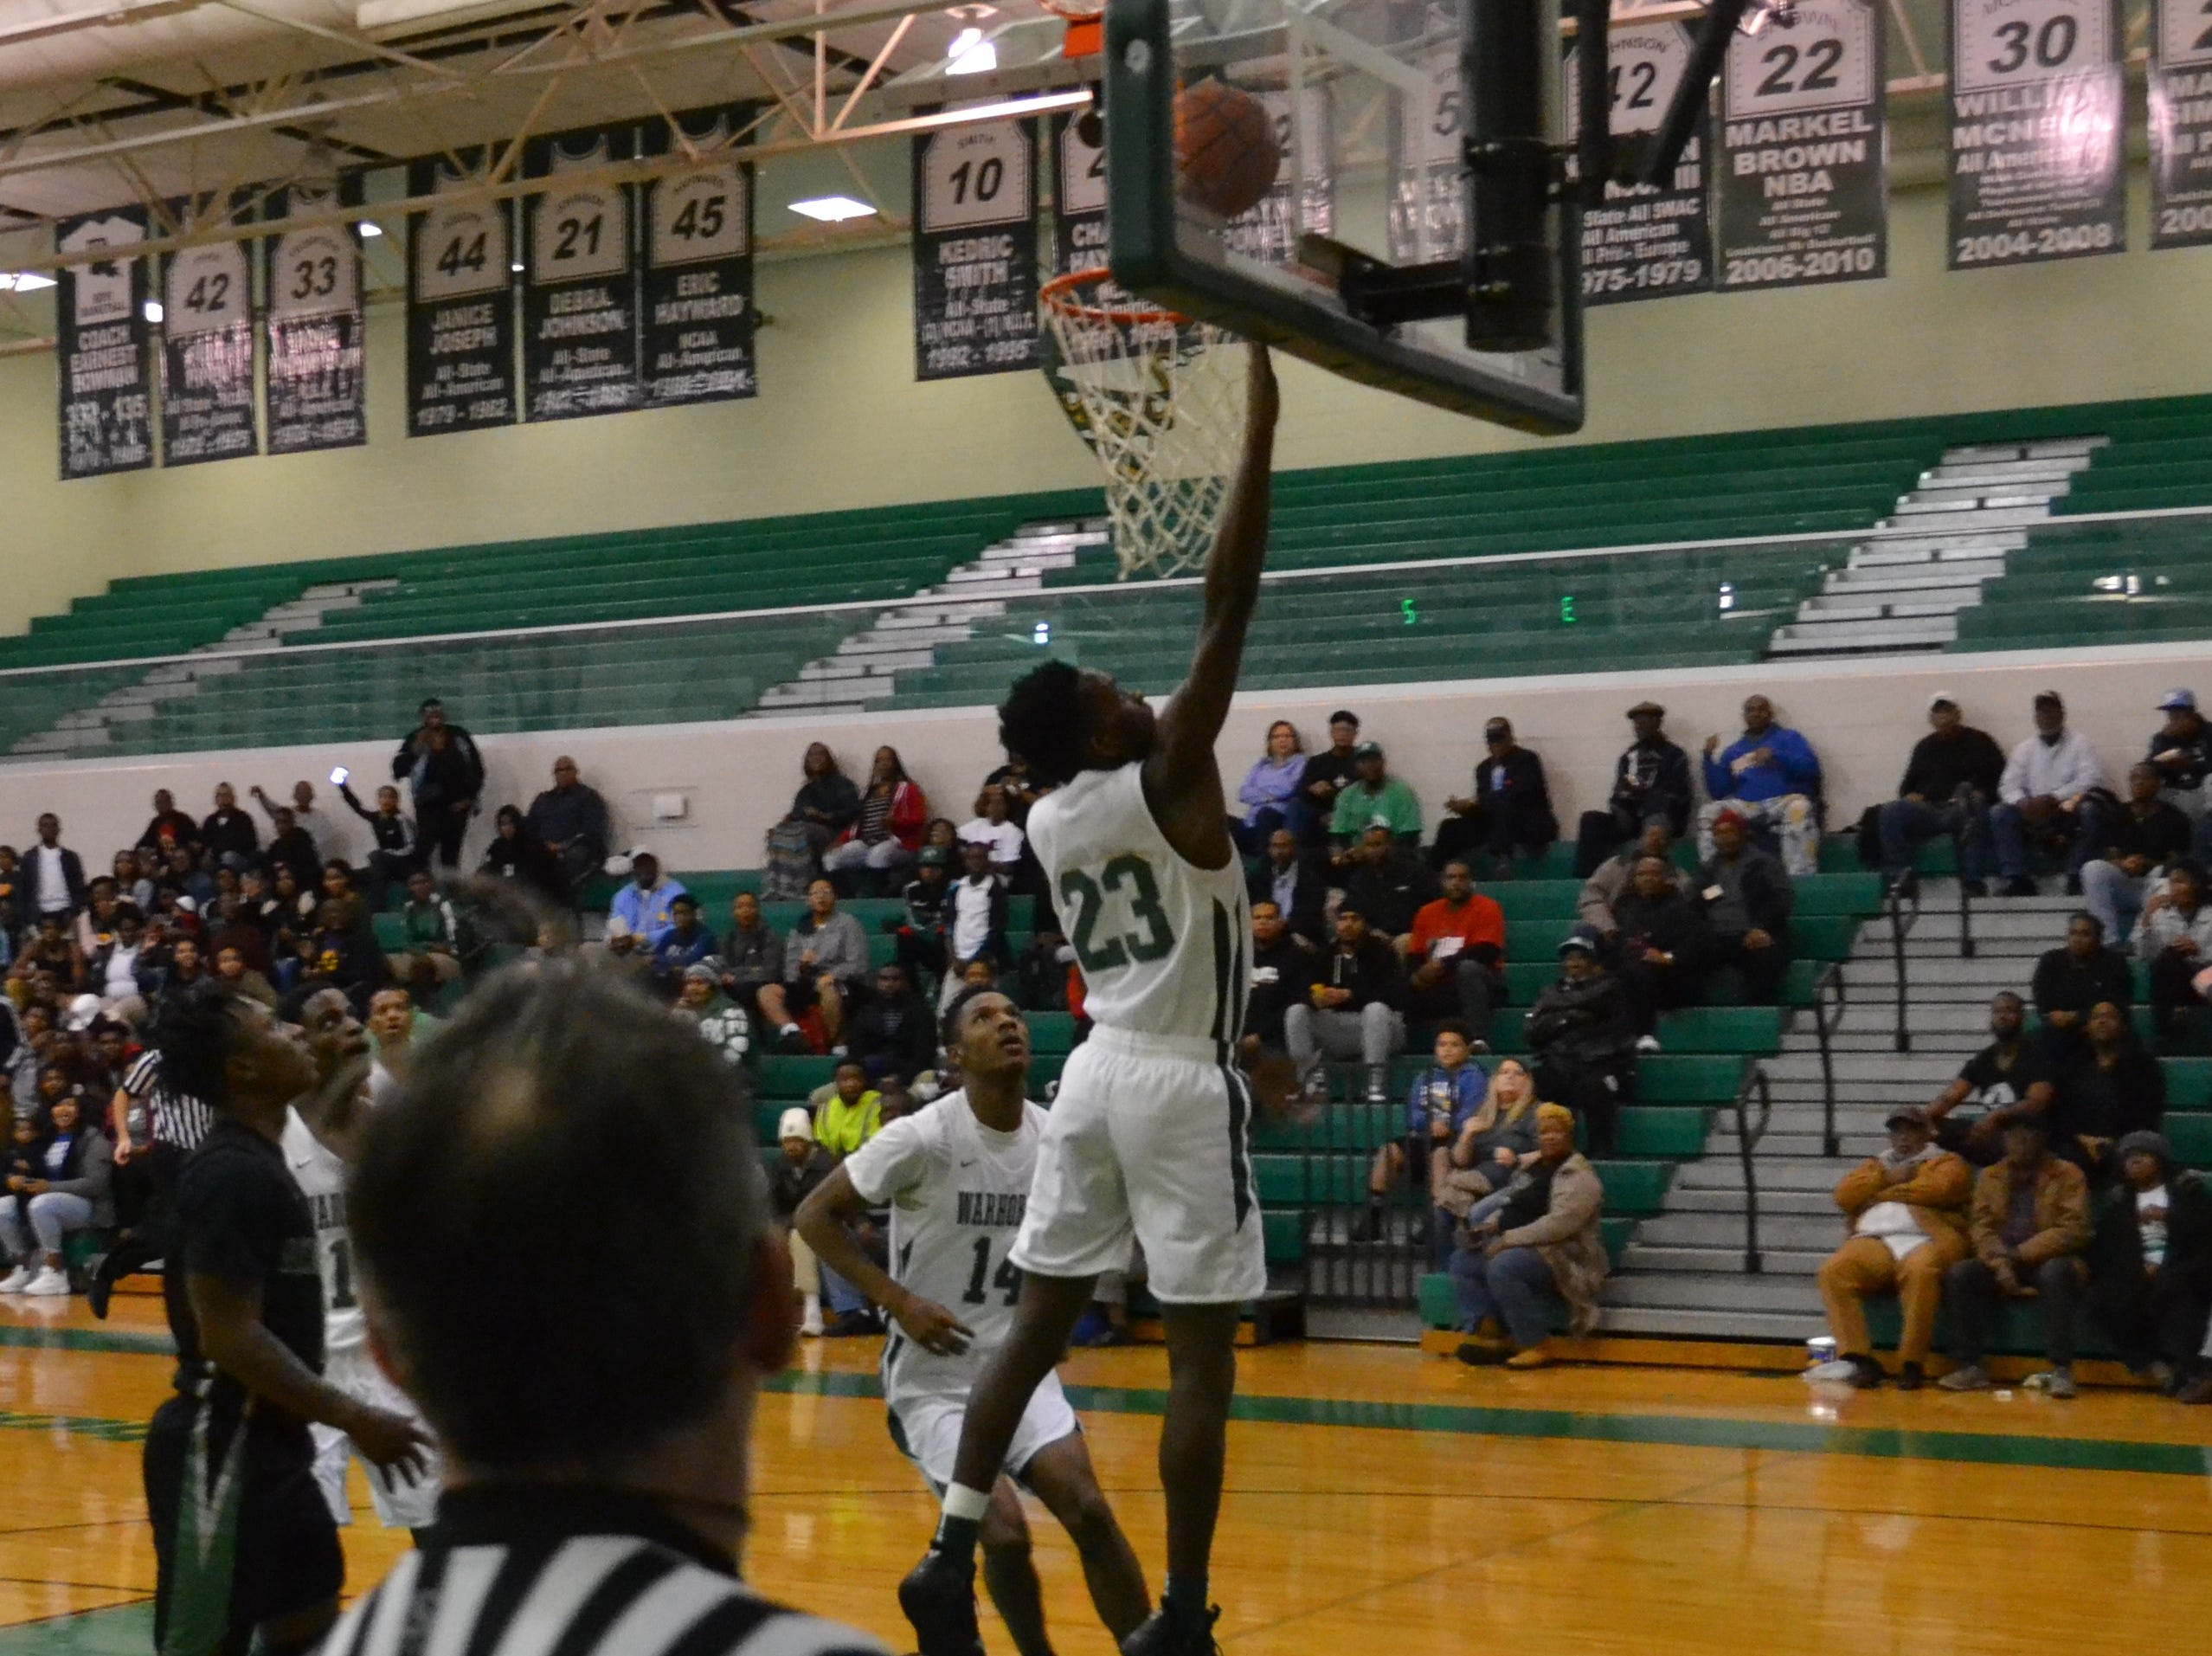 Darius Smith (23) gets a layup for the Warhorses. The Peabody boys basketball team played the Bossier Bearkats Tuesday night at the Emerald Palace. Peabody got the win 72-67.